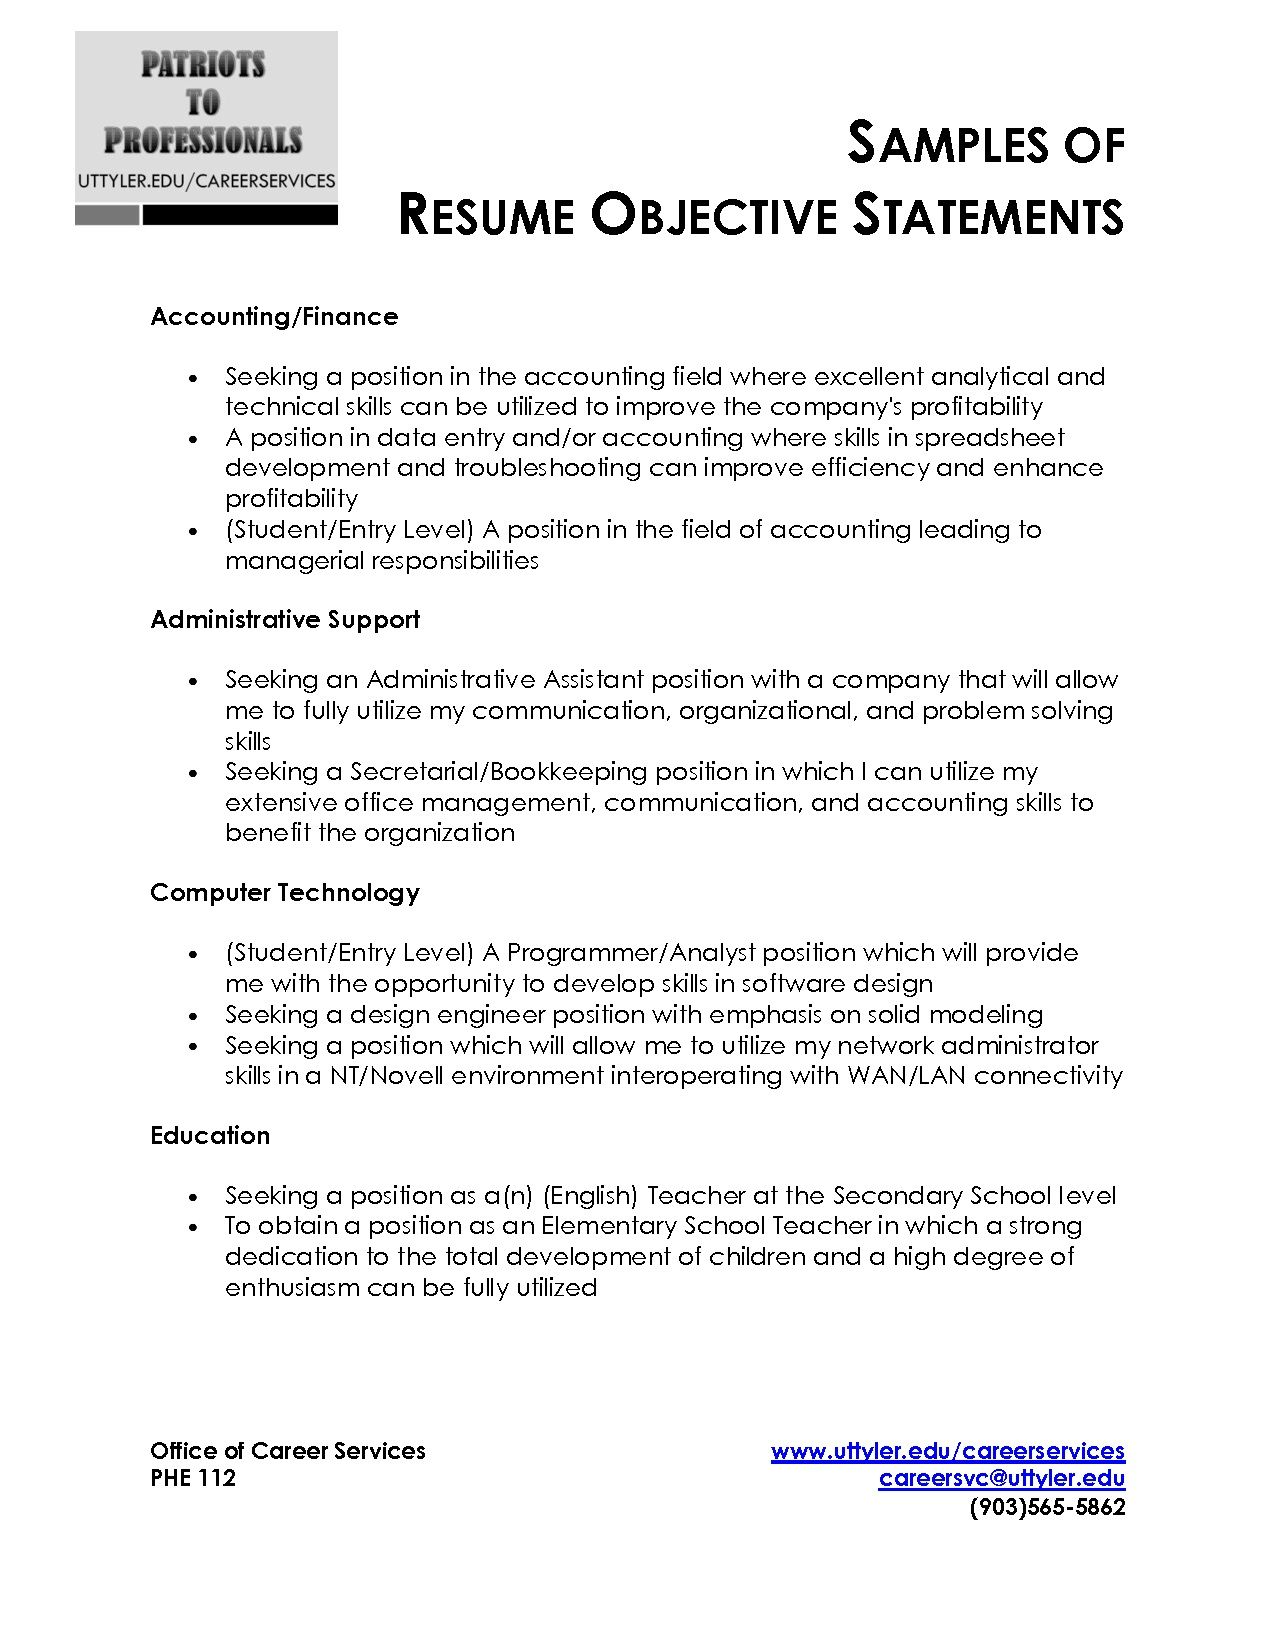 Sample Resume Objective Statement - (adsbygoogle = window ...